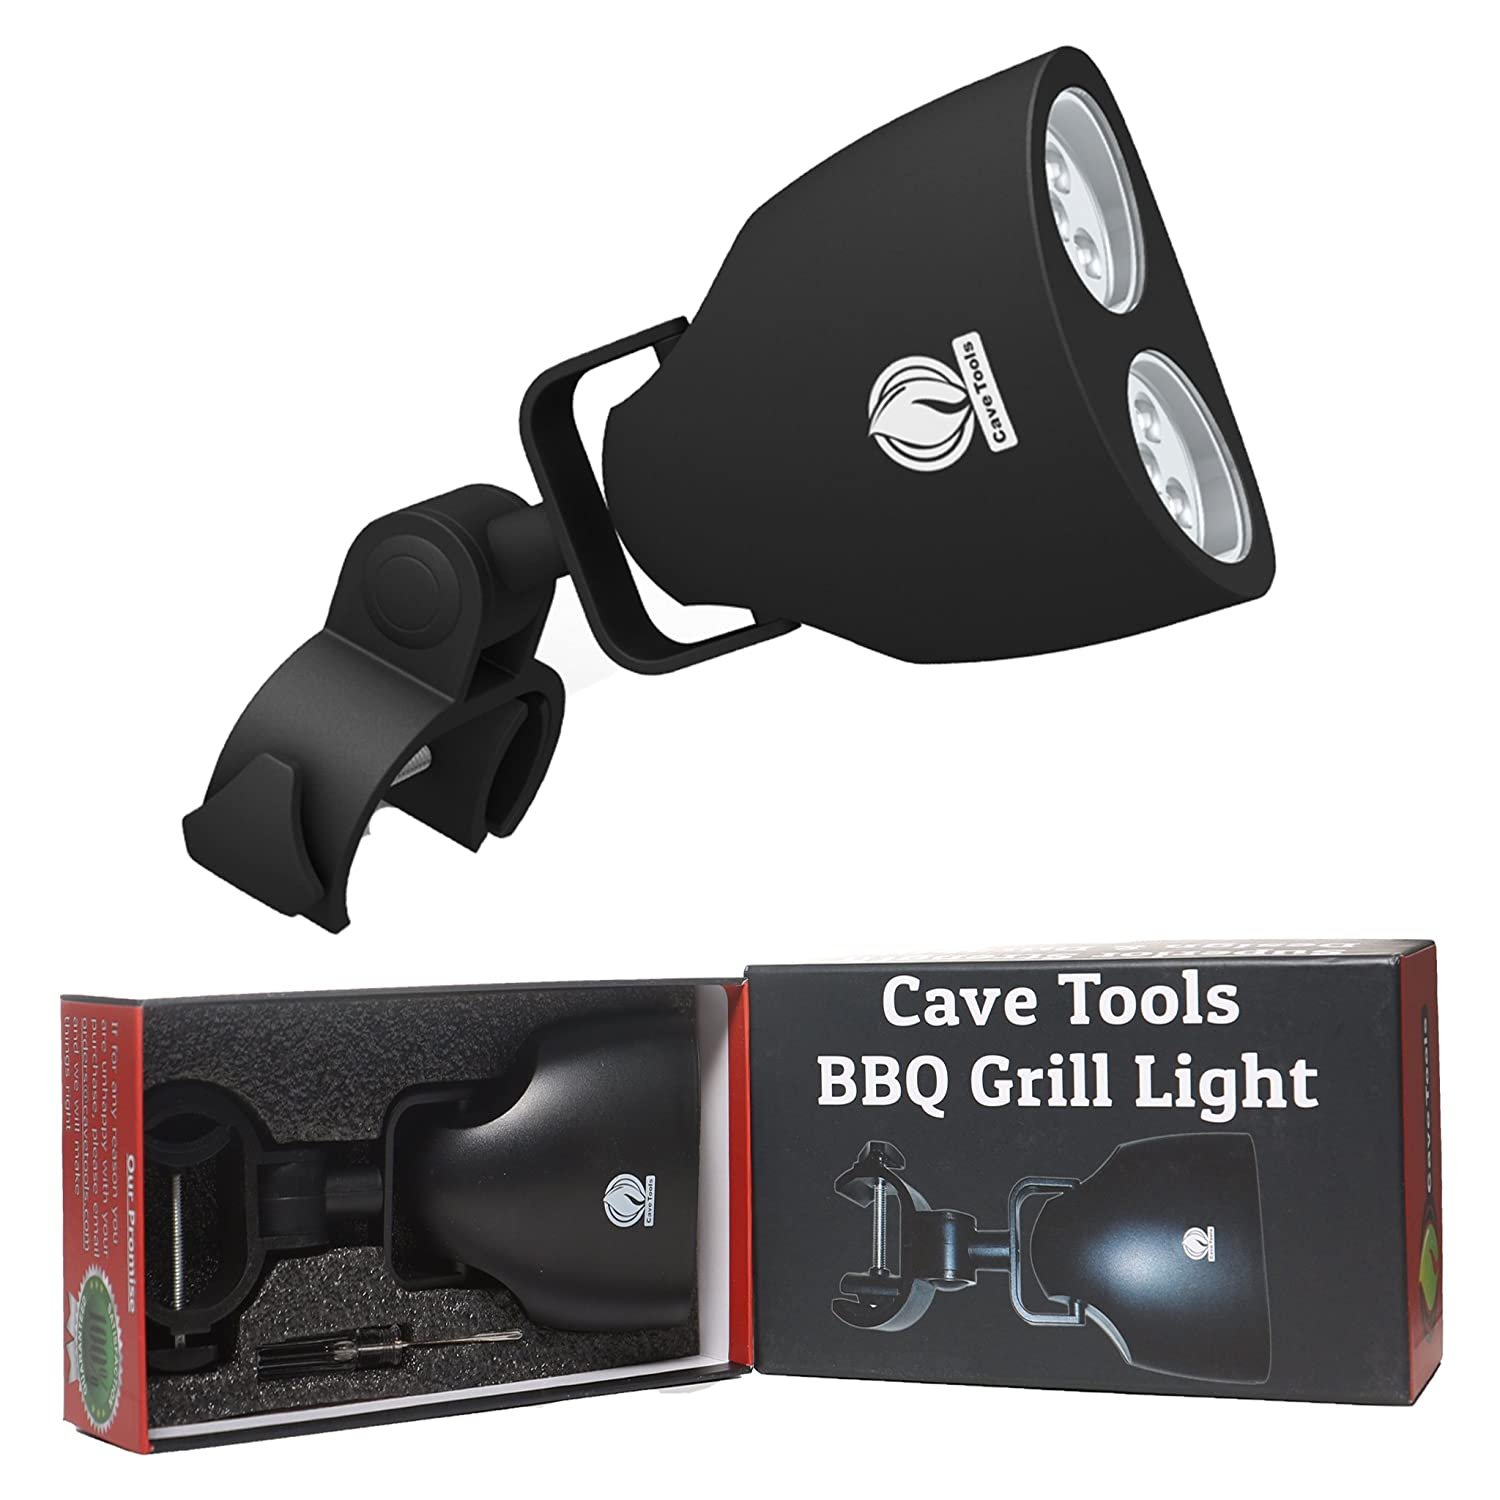 Cave tools barbeque grill lights